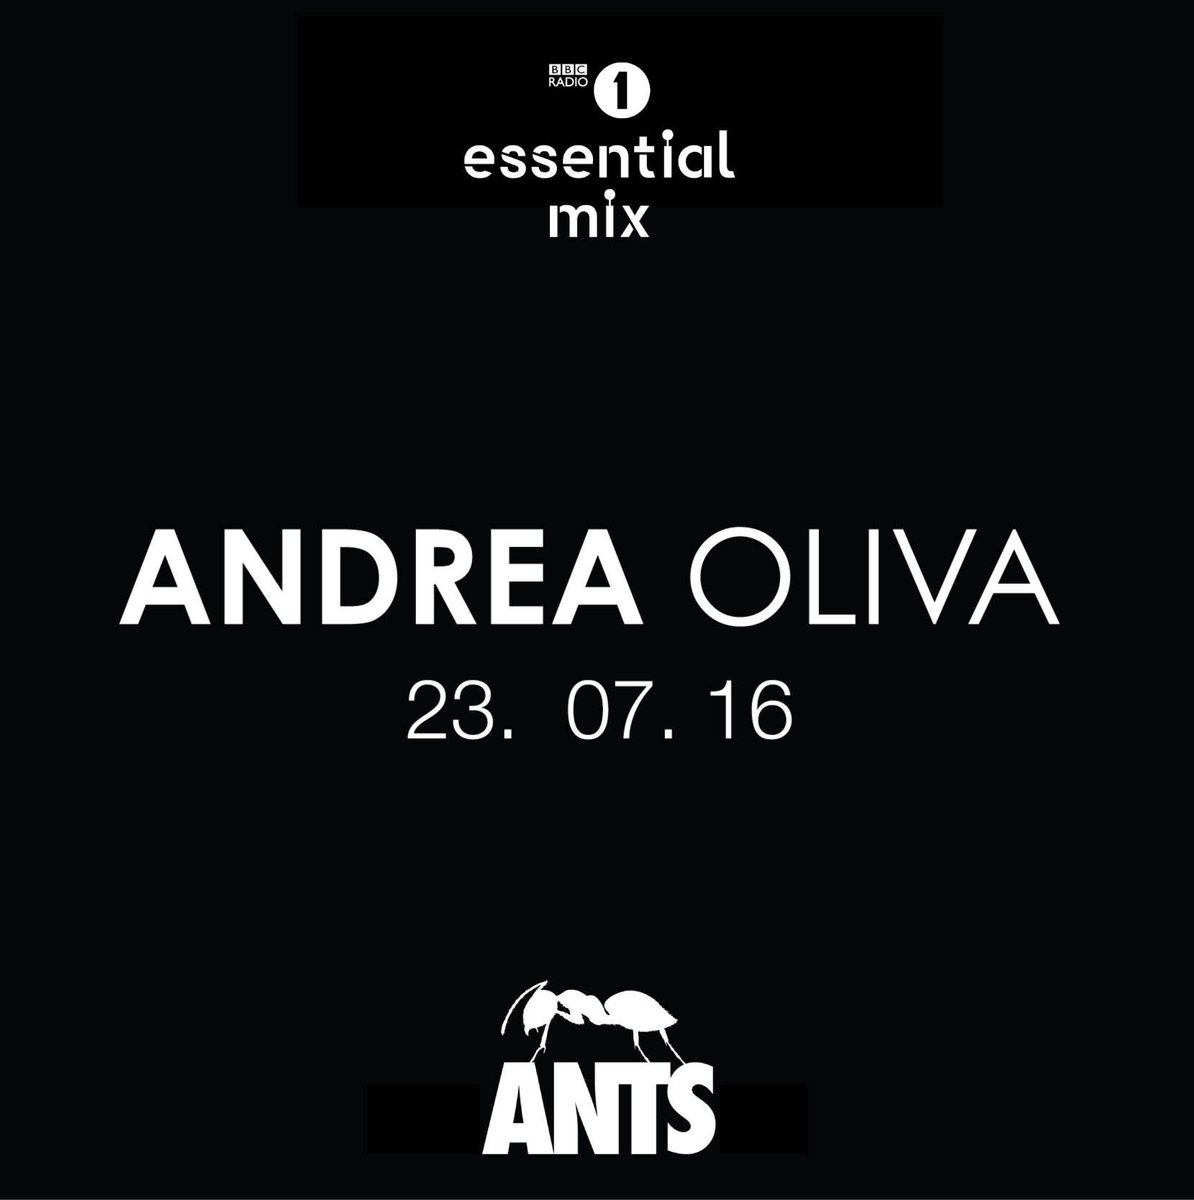 At last tonight we get to hear the @AndreaOliva1 @essentialmix recorded live at @UnitedAnts on @BBCR1 Get tuned!!! https://t.co/7J1pAn9Yd6